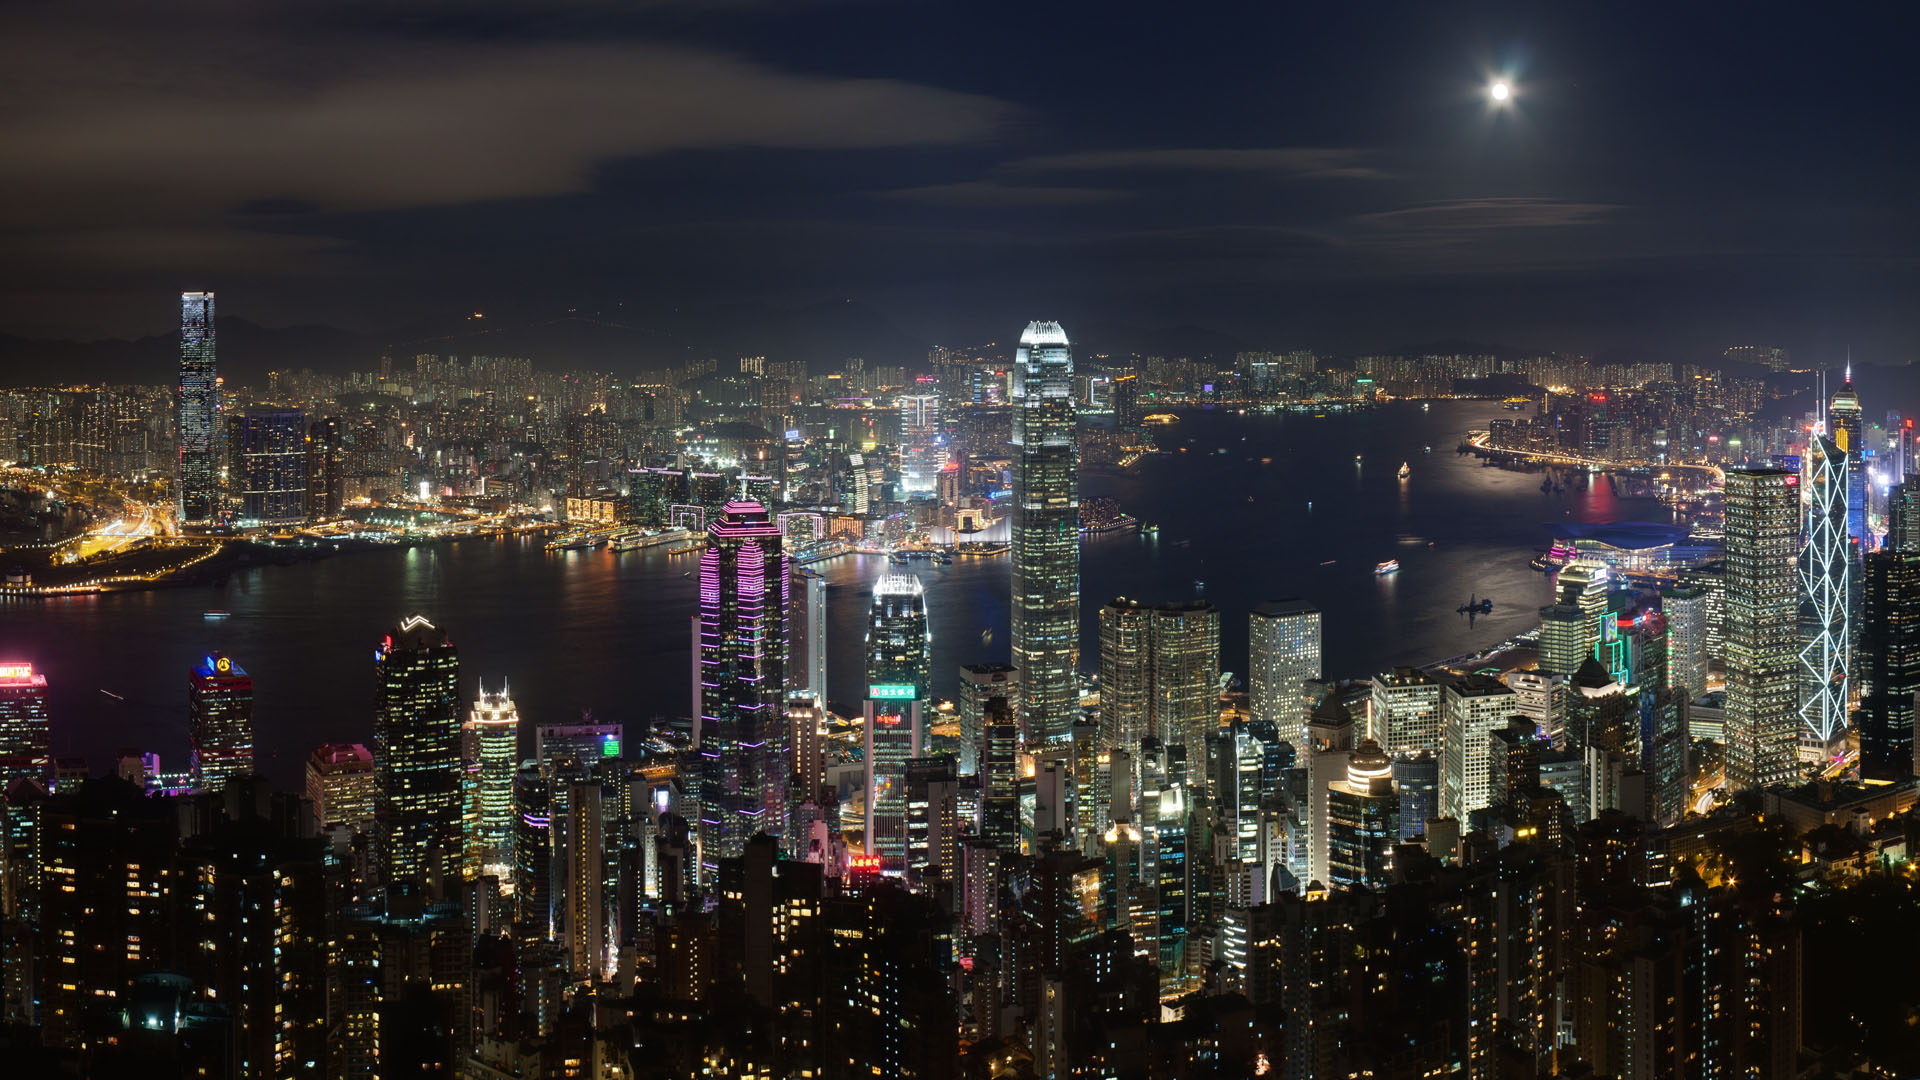 What can Hong Kong mean for (Dutch) hardware startups?